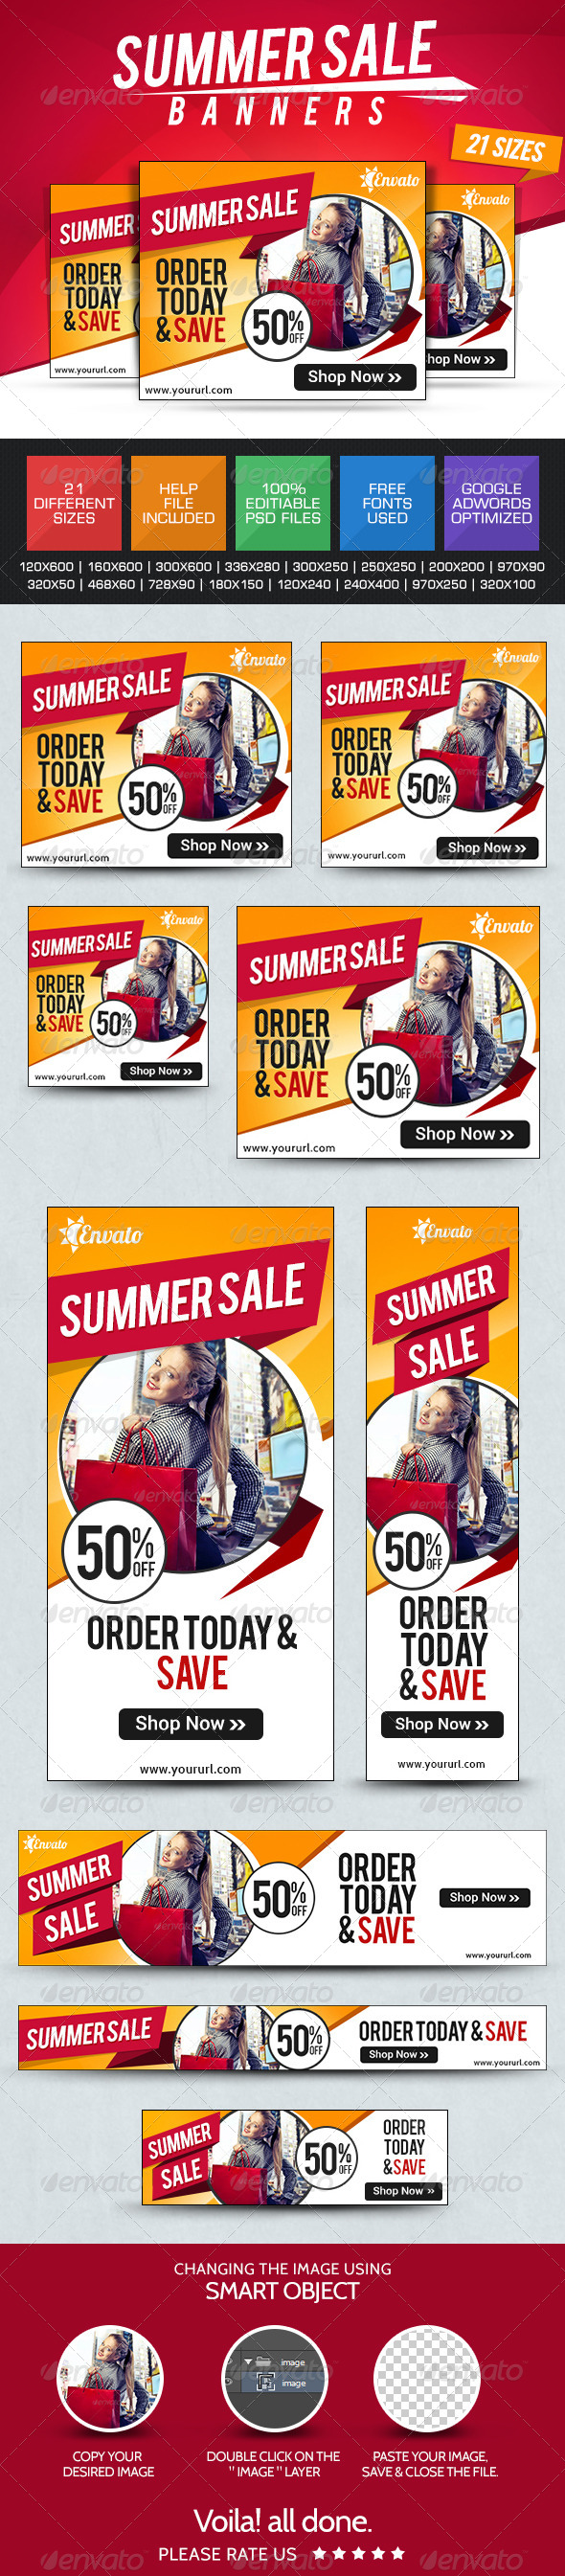 GraphicRiver Summer Sale Banners 7775157